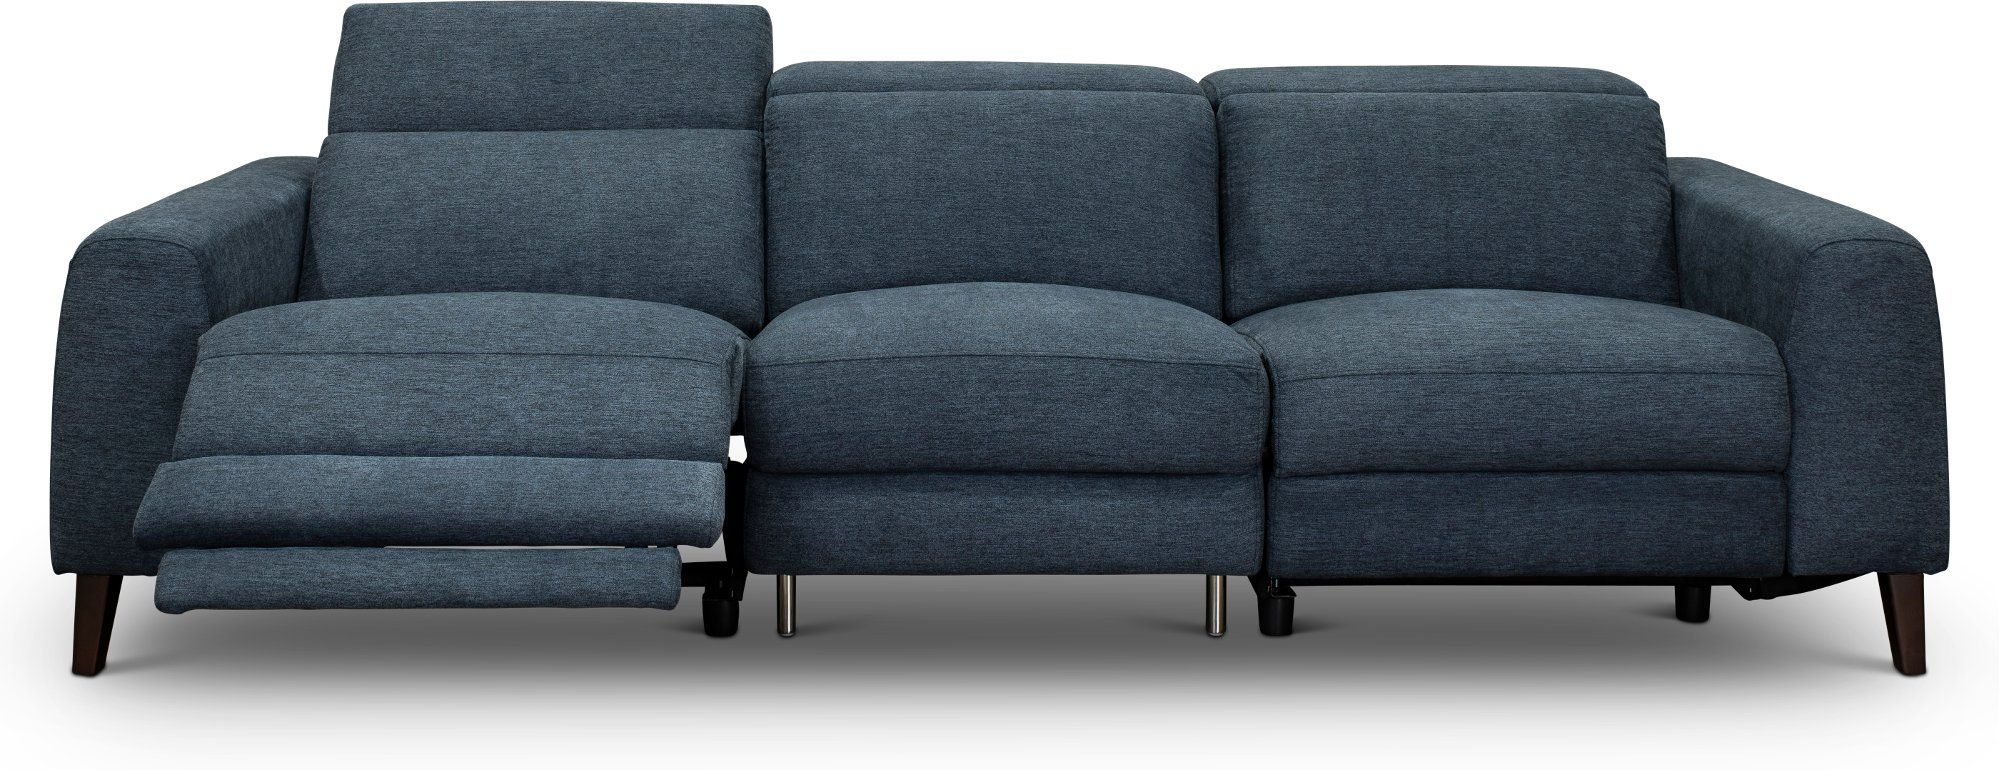 Swell Navy Blue Transitional Power Reclining Sofa Royals My Ibusinesslaw Wood Chair Design Ideas Ibusinesslaworg